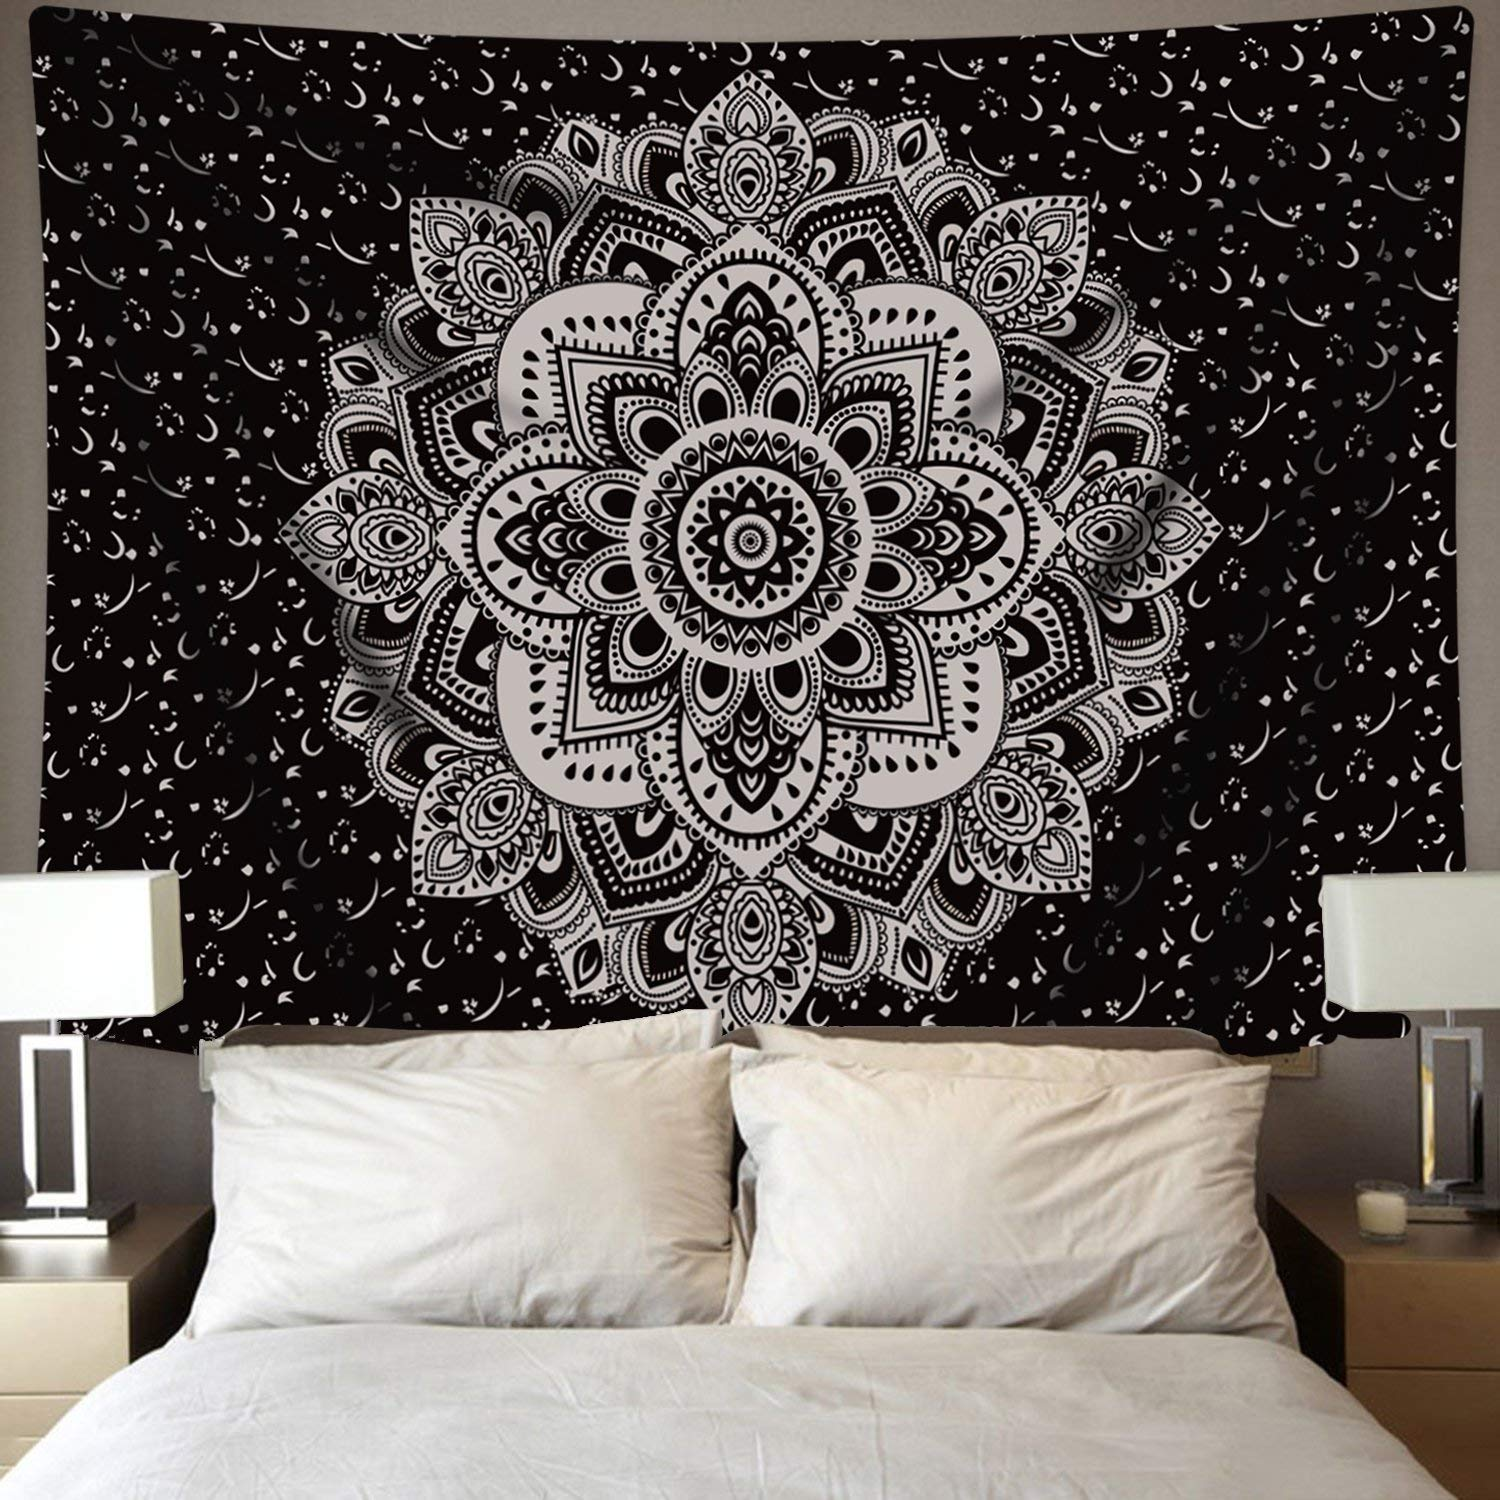 BLEUM CADE Mandala Tapestry Wall Hanging Black & Gray Wall Art Floral Decorative for Bedroom Living Room 51x59 Inches by BLEUM CADE